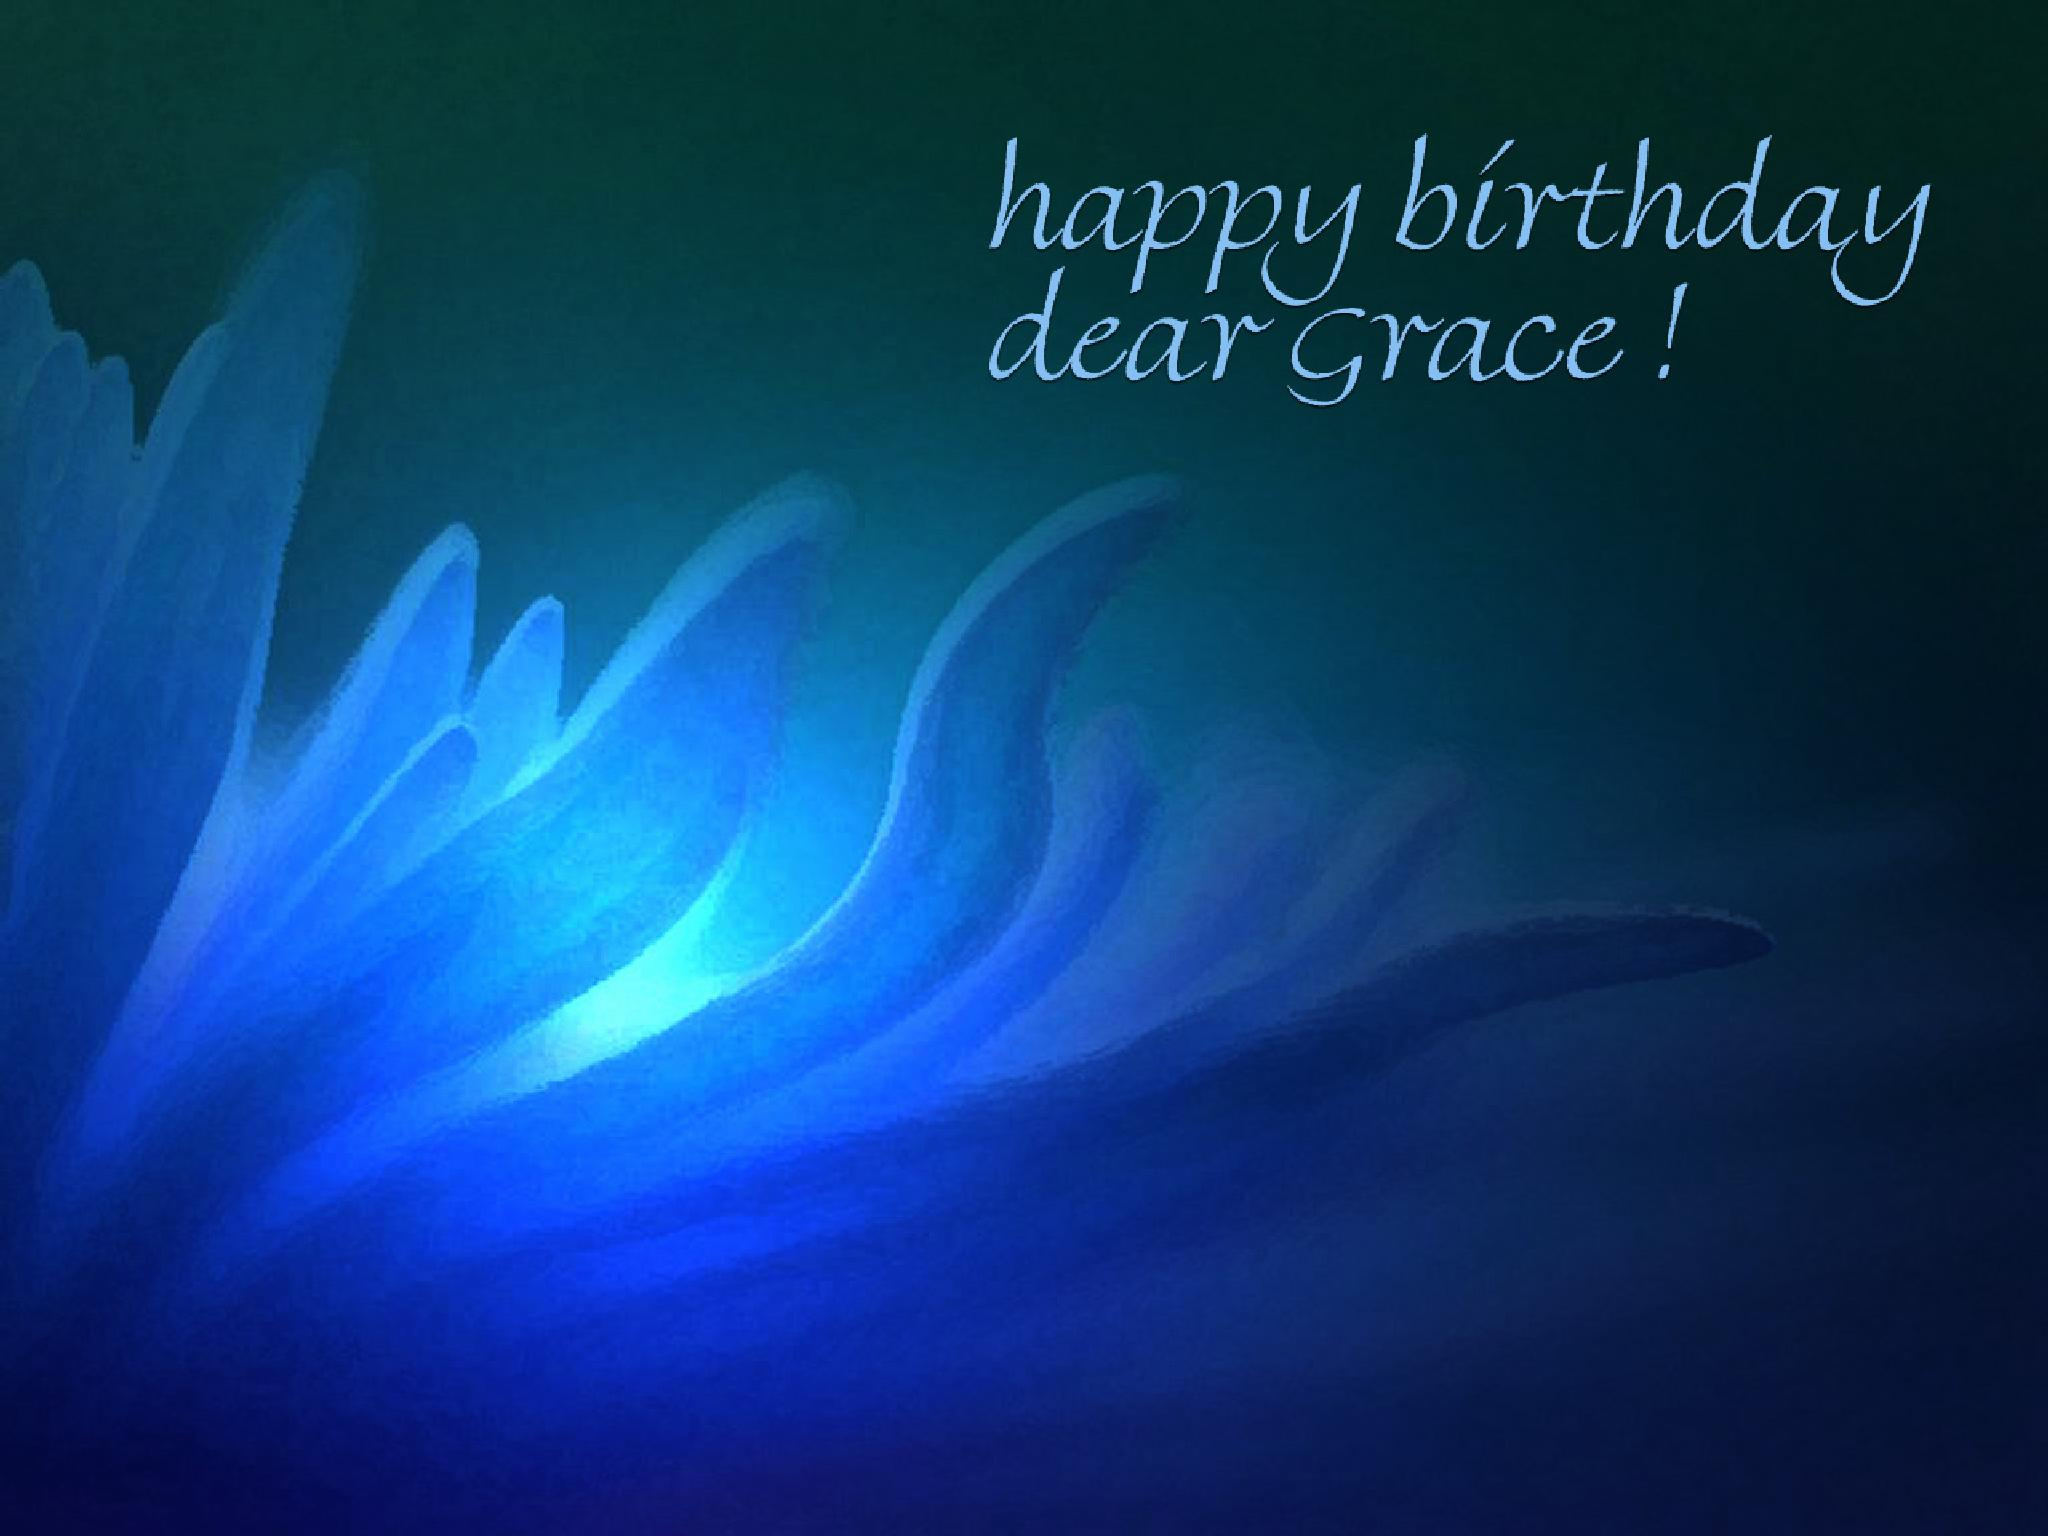 To Grace Olsson on her birthday by Rauf